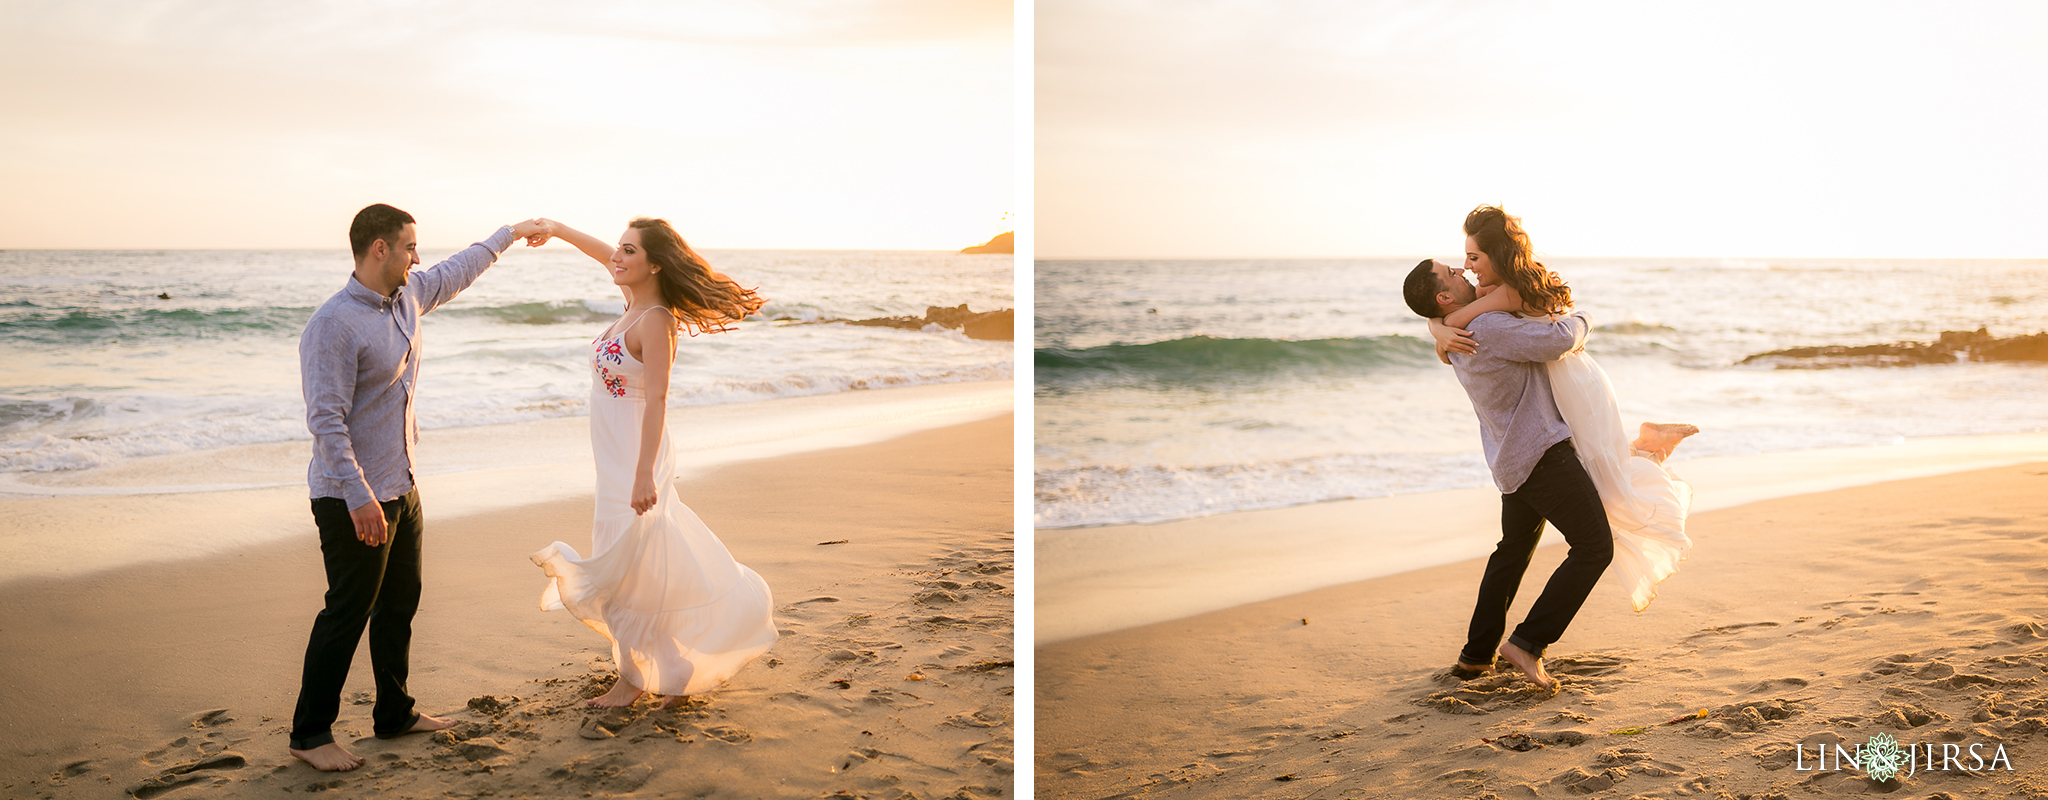 10-laguna-beach-orange-county-beach-engagement-photography